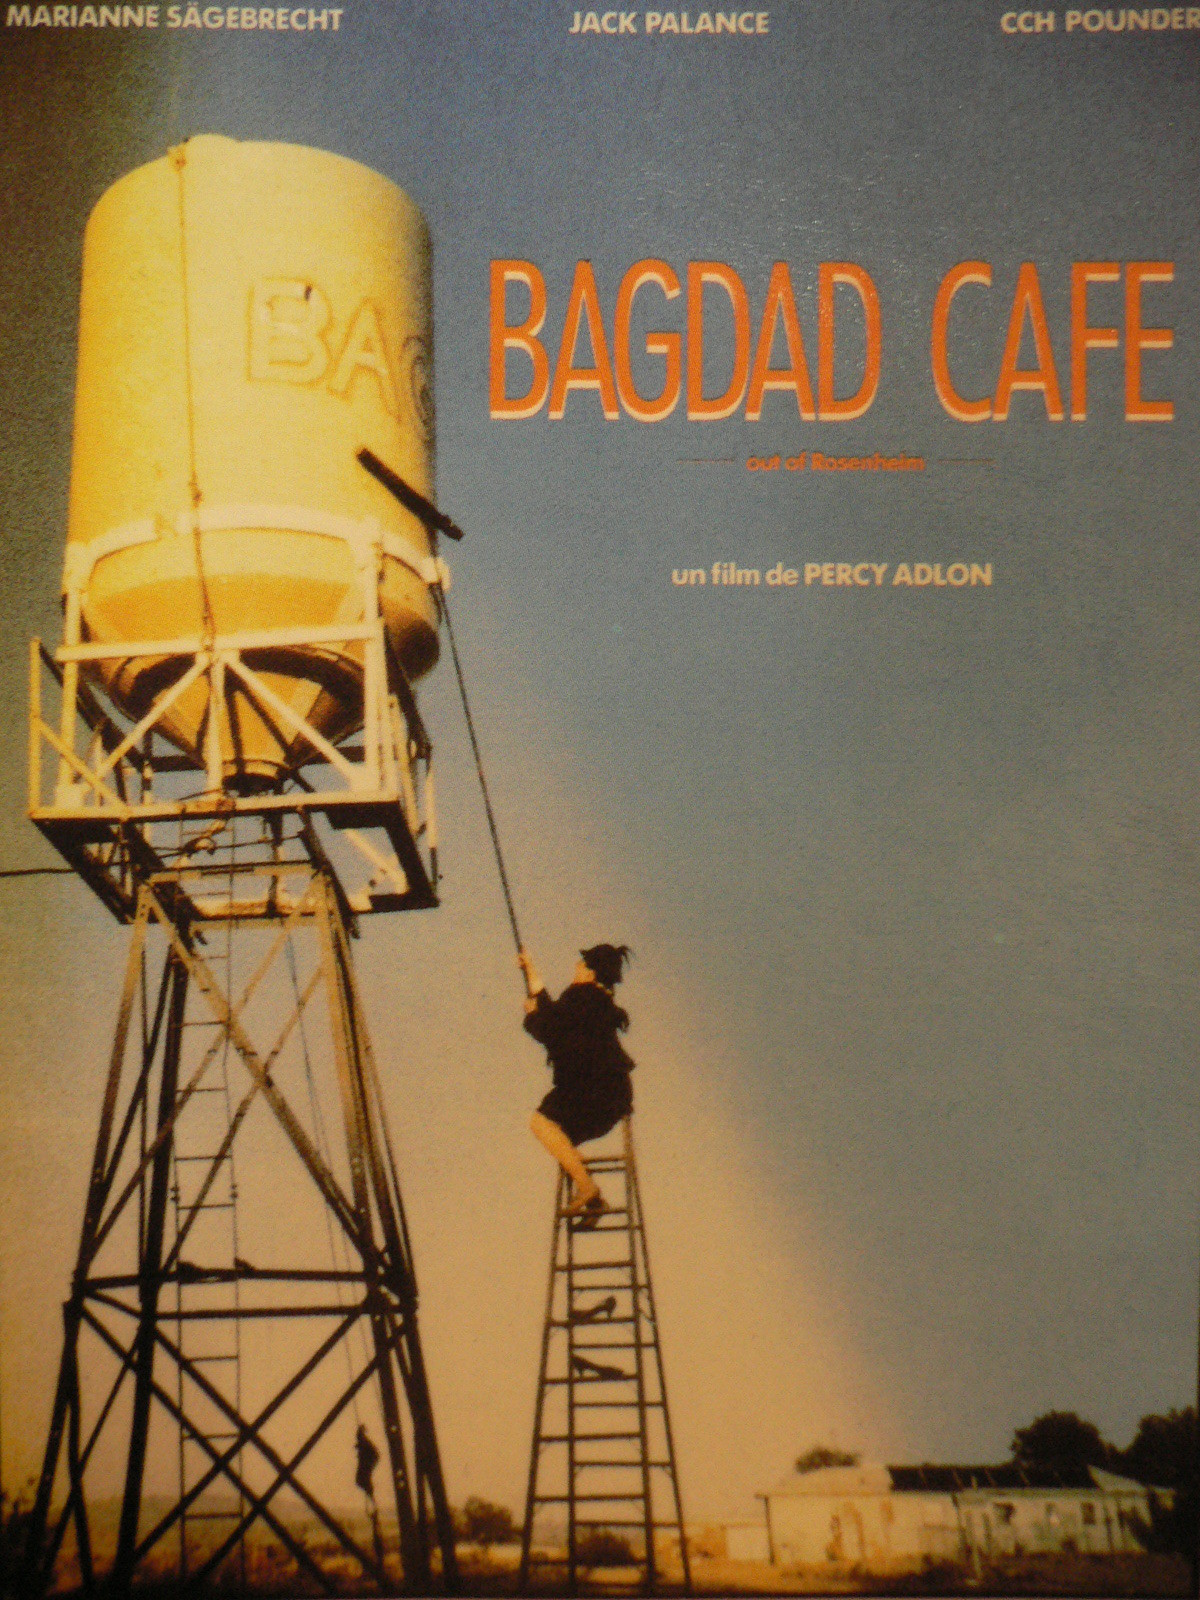 Bagdad Cafe: Out of Rosenheim (1987)